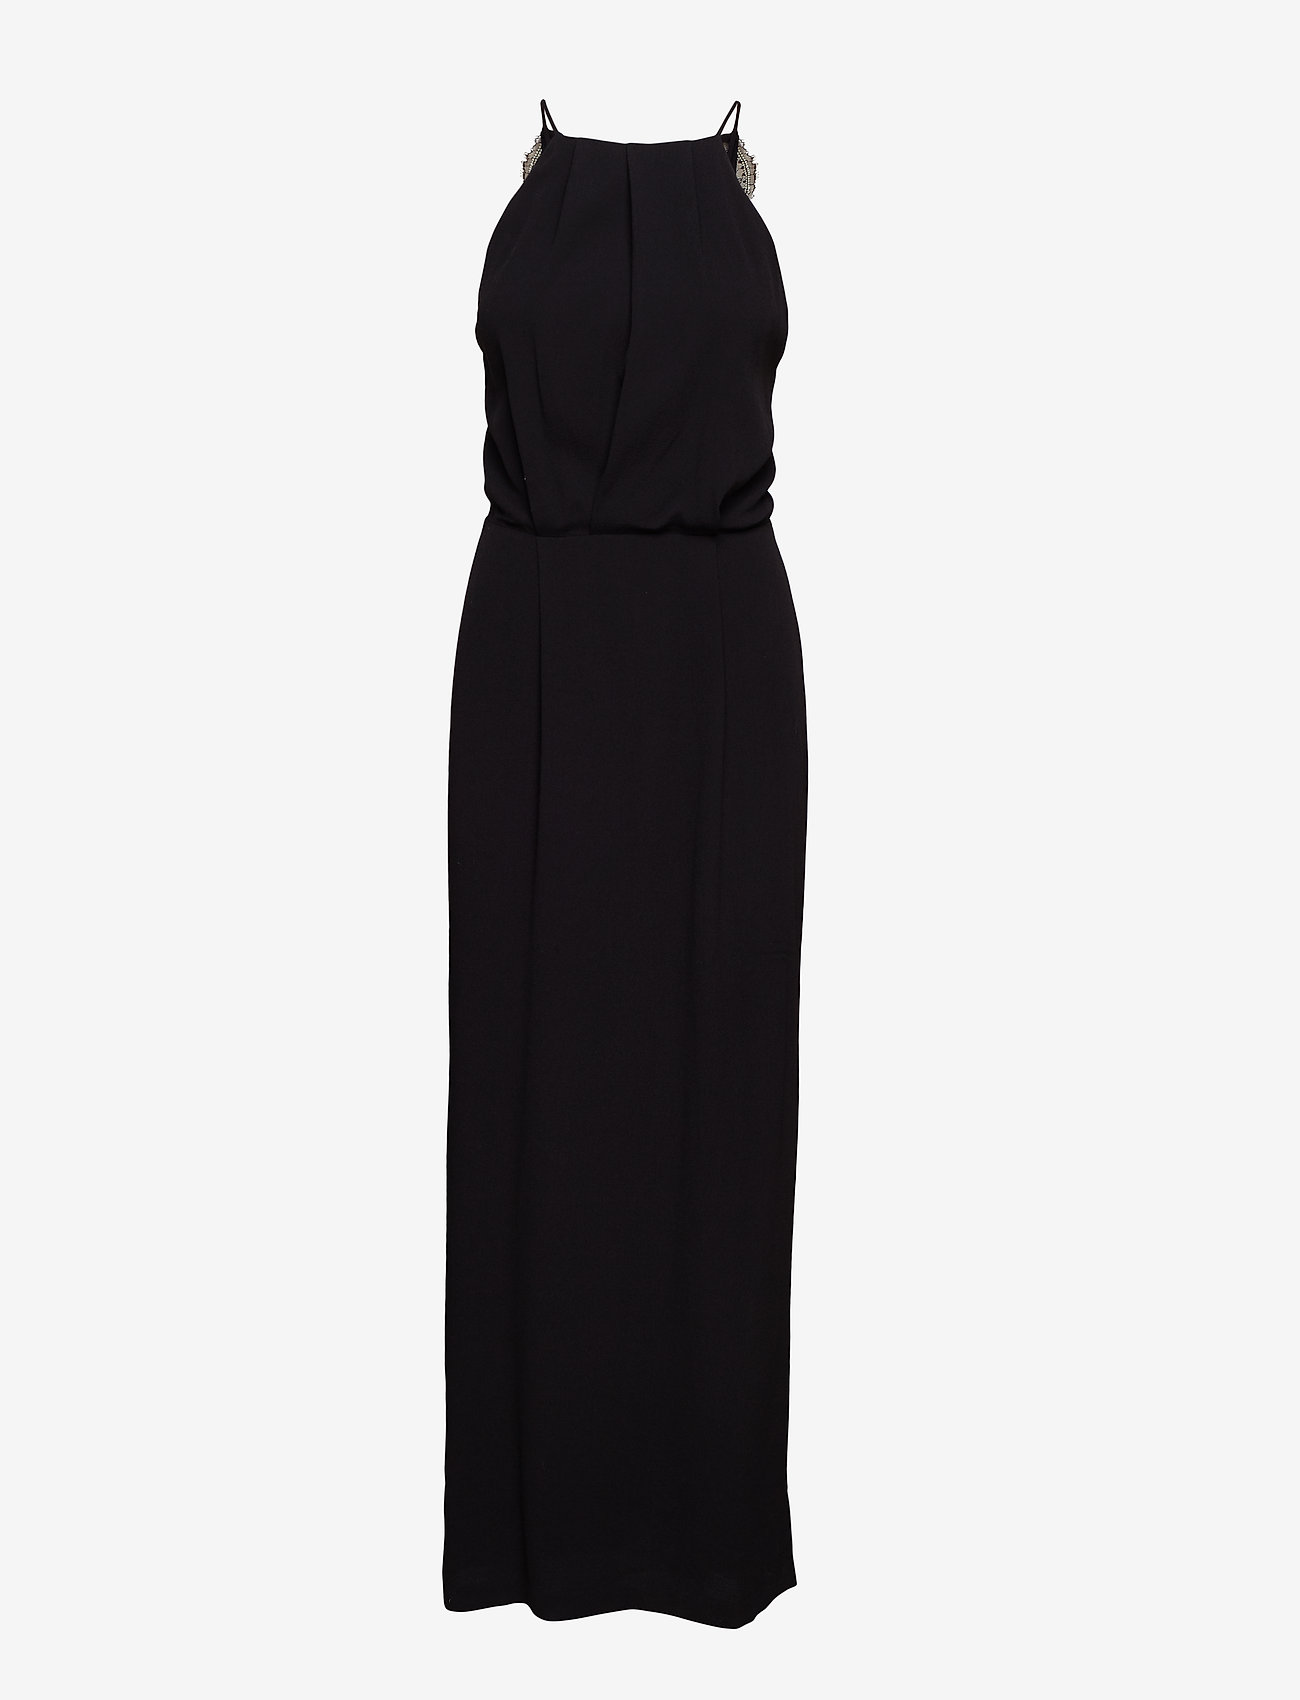 Samsøe Samsøe - Willow dress long 5687 - maxi sukienki - black - 0